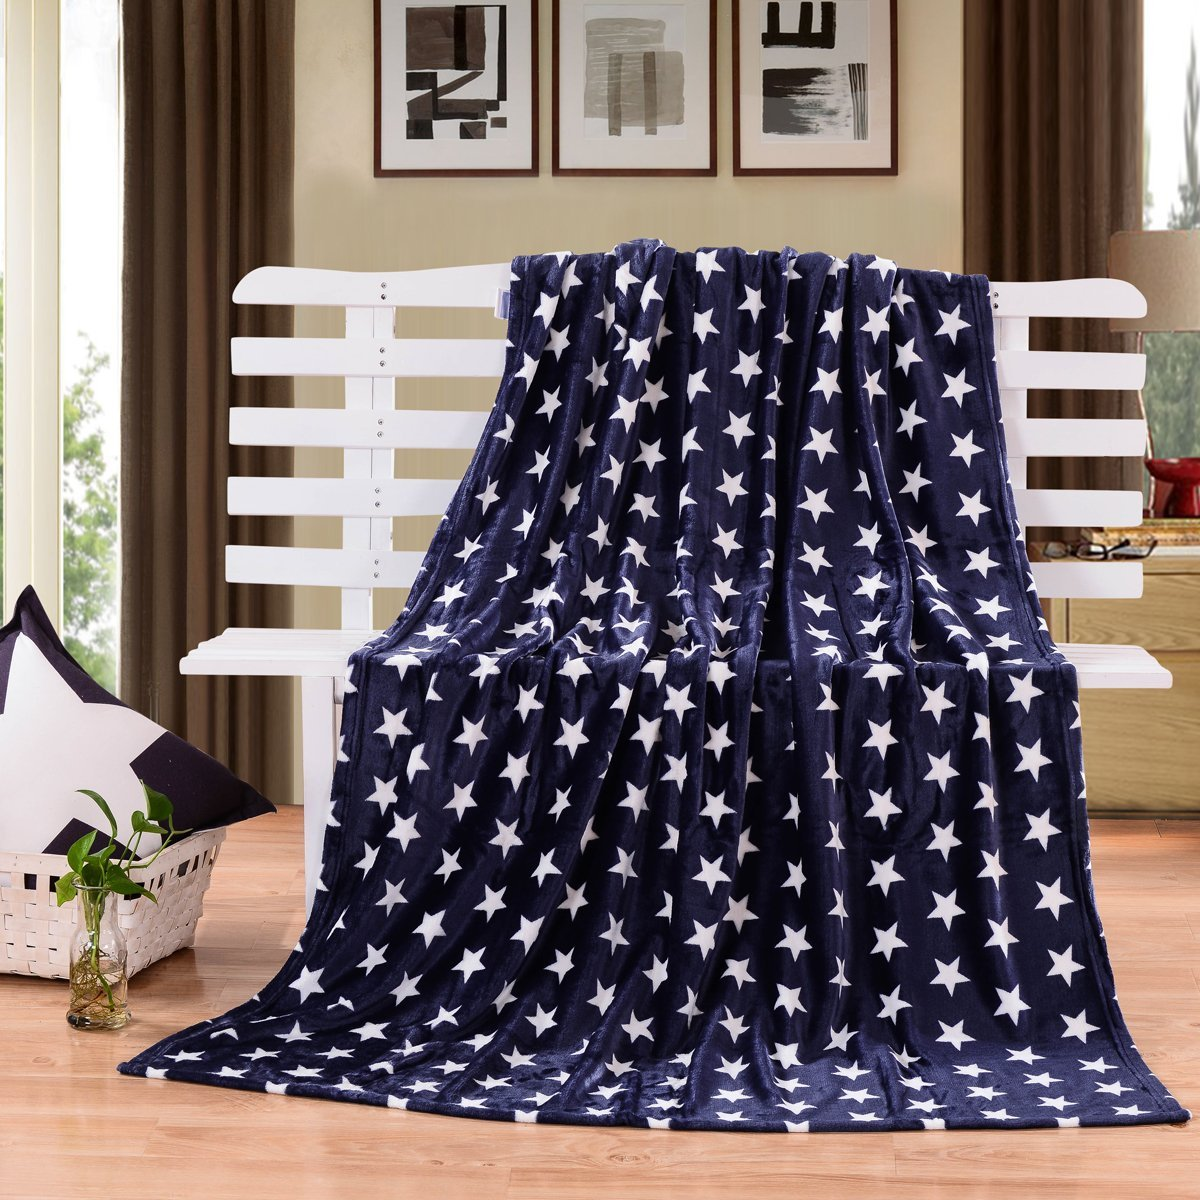 HYSEAS Velvet Plush Throw, Home Fleece Throw Blanket, 50 by 60-Inch, Blue Star